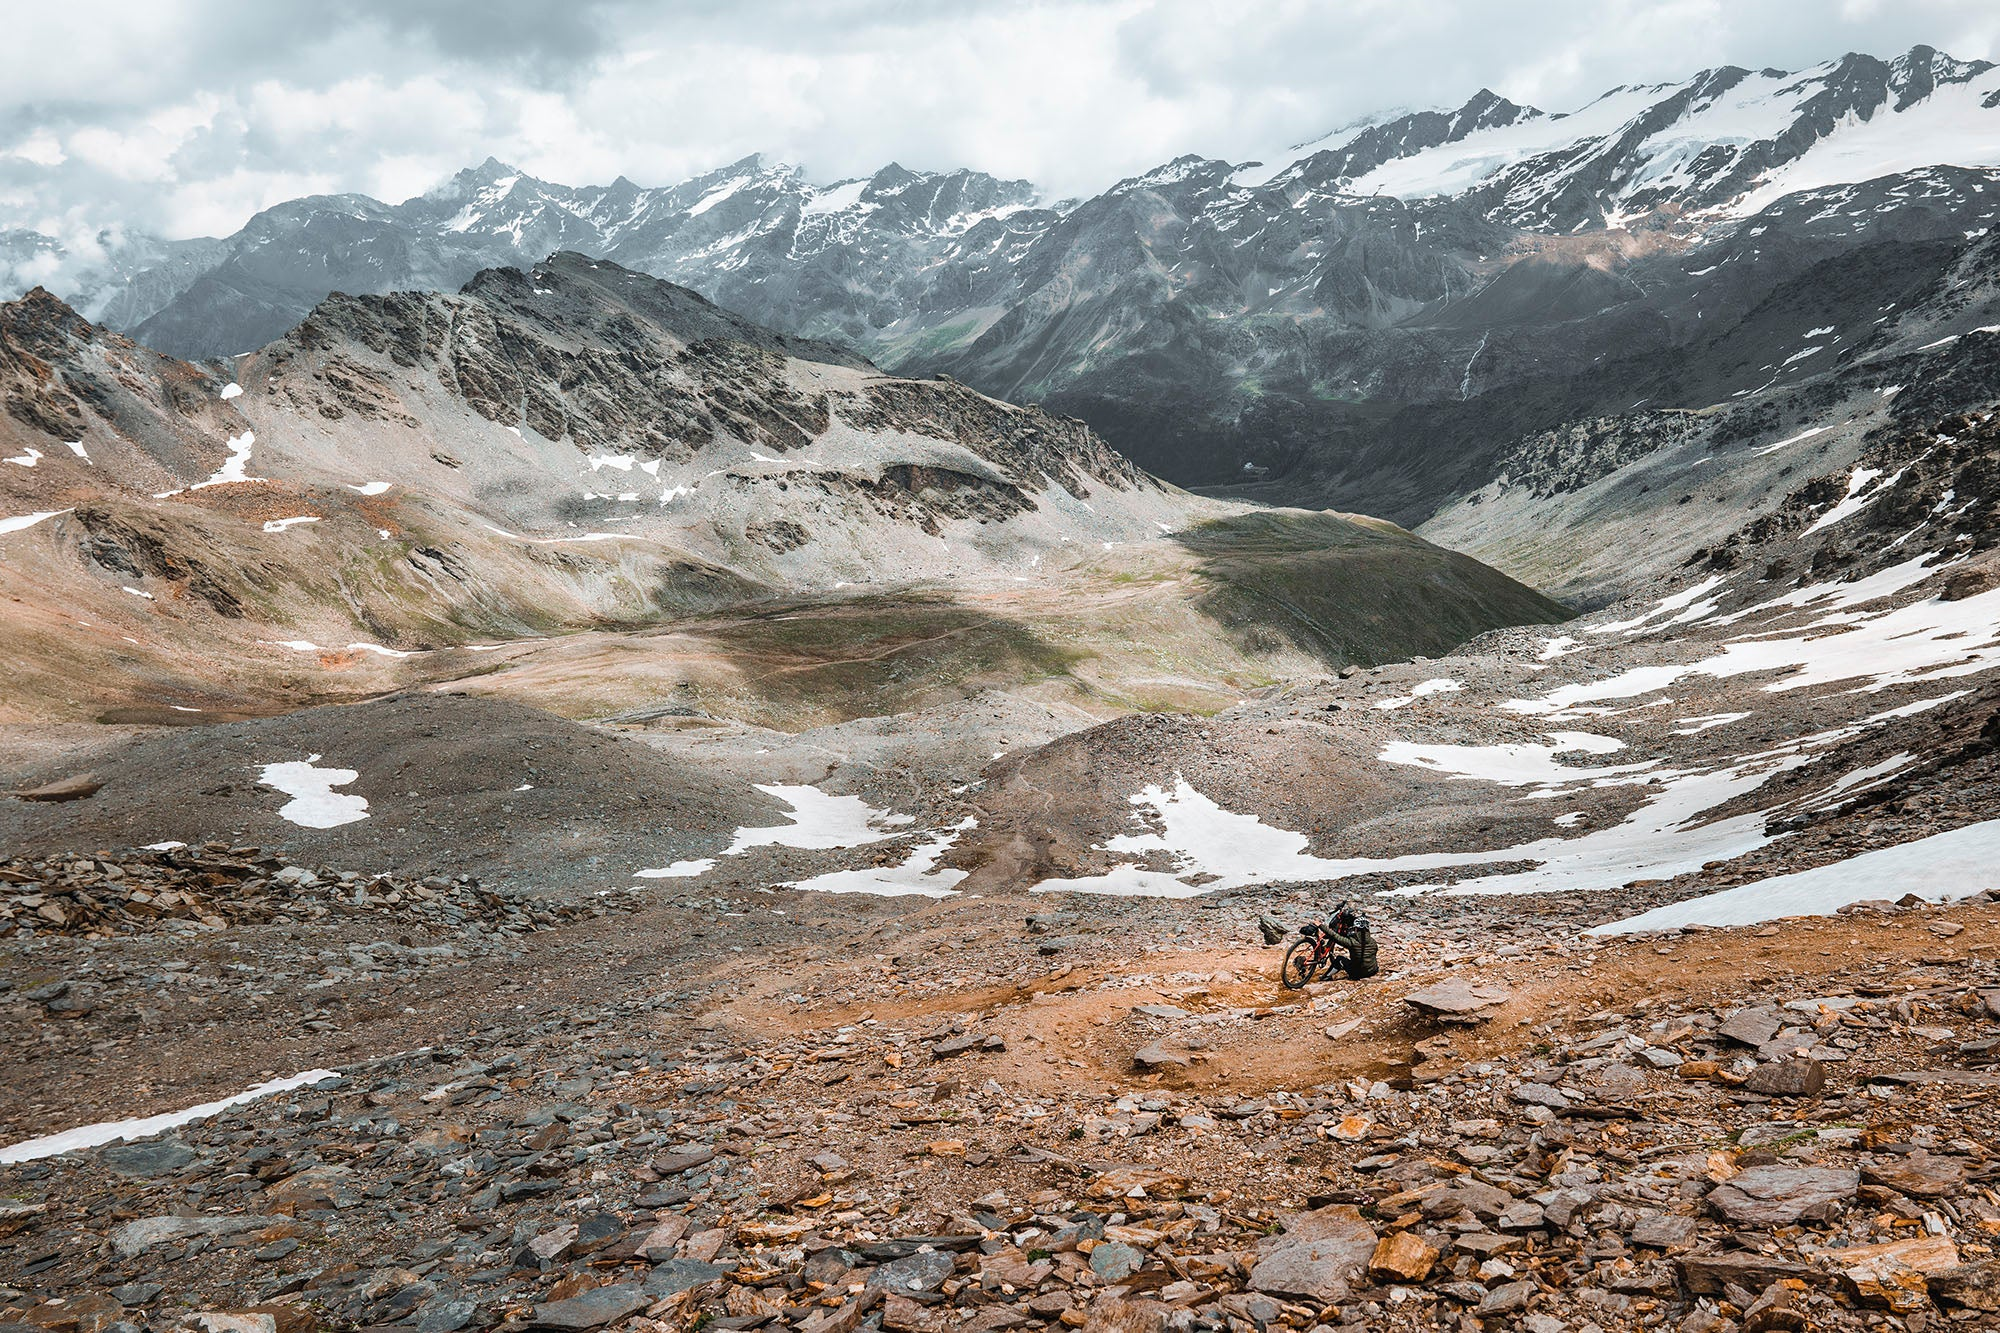 restrap sanne hipiteuw far ride magazine italy alps bikepacking mountains